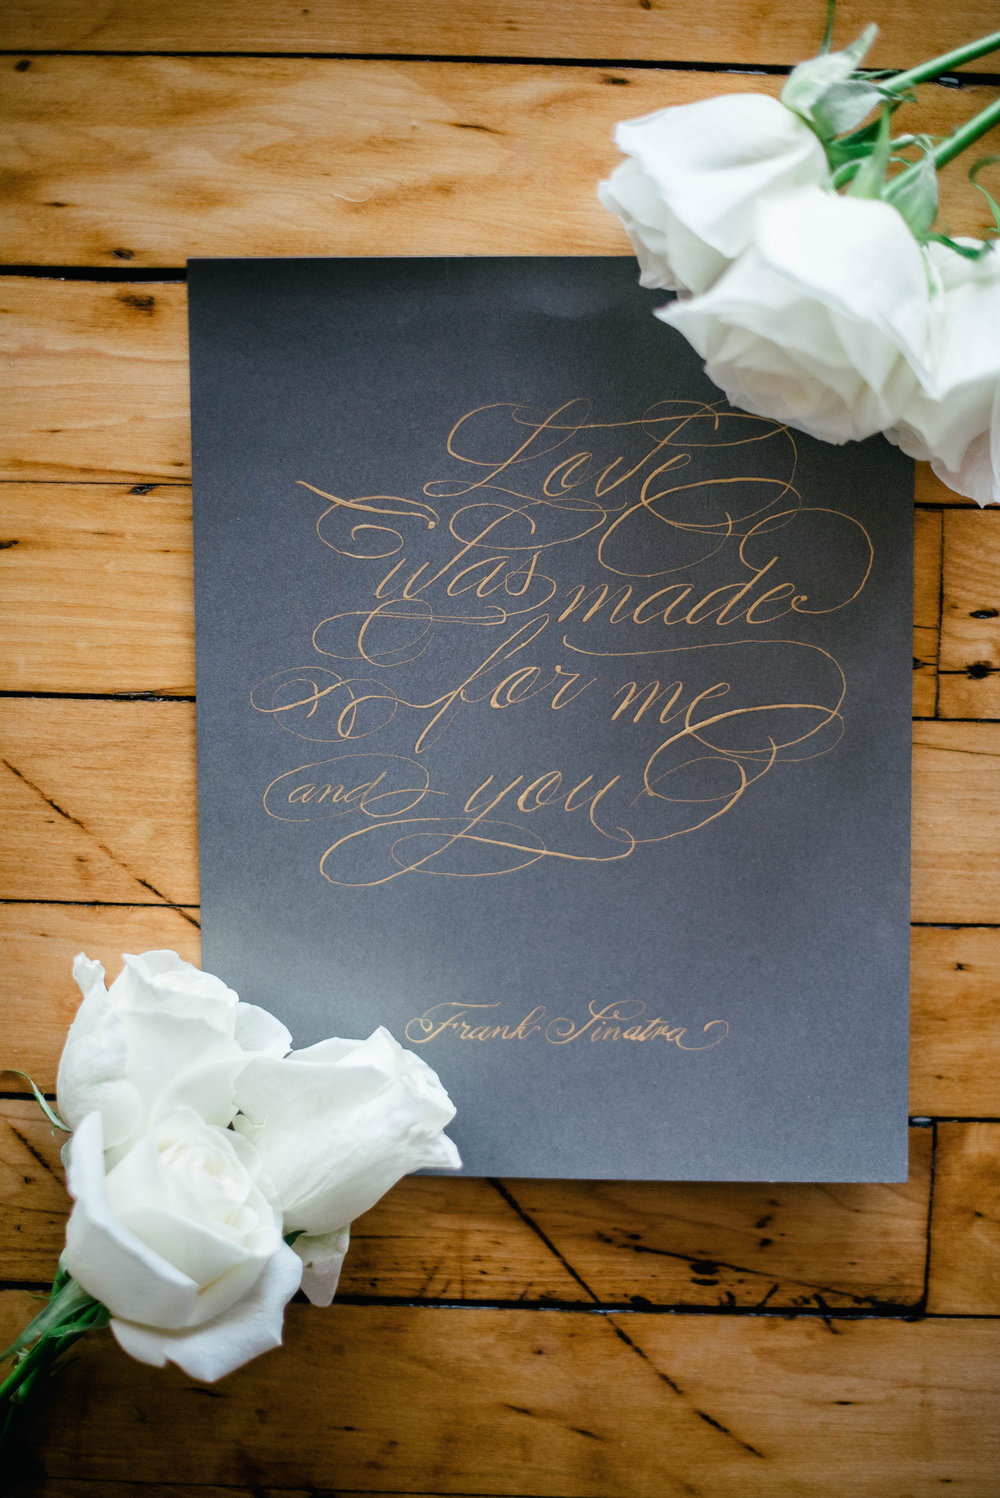 Central PA, York PA, JesSmith Designs, custom, wedding, invitations, bridal, announcements, save the date, birth, baby, motherhood, hanover, calligraphy, handlettering Smith Favorites-0057.jpg